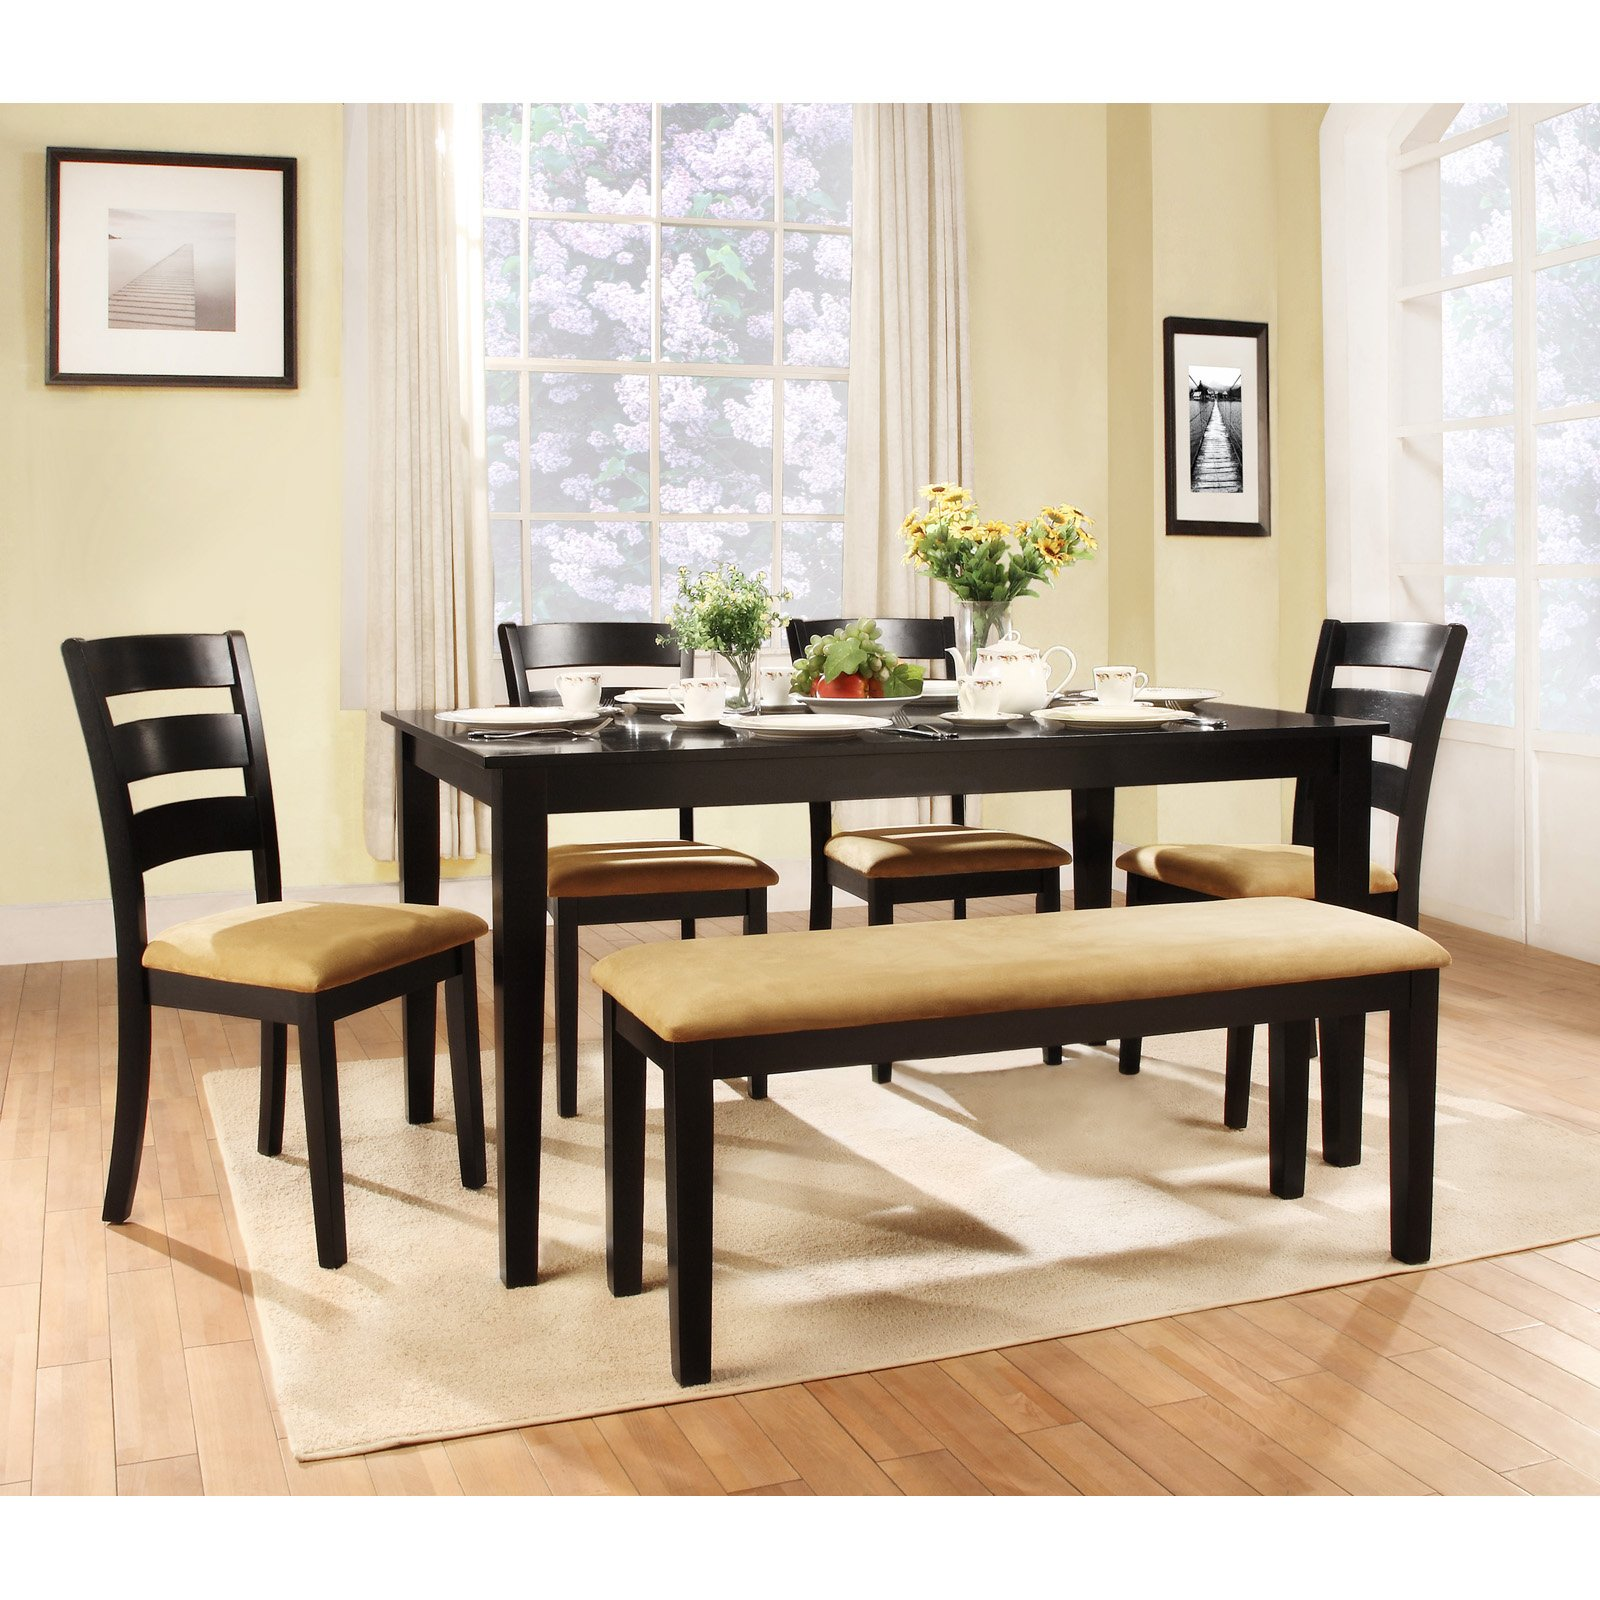 Modern bench style dining table set ideas homesfeed Dining set design ideas